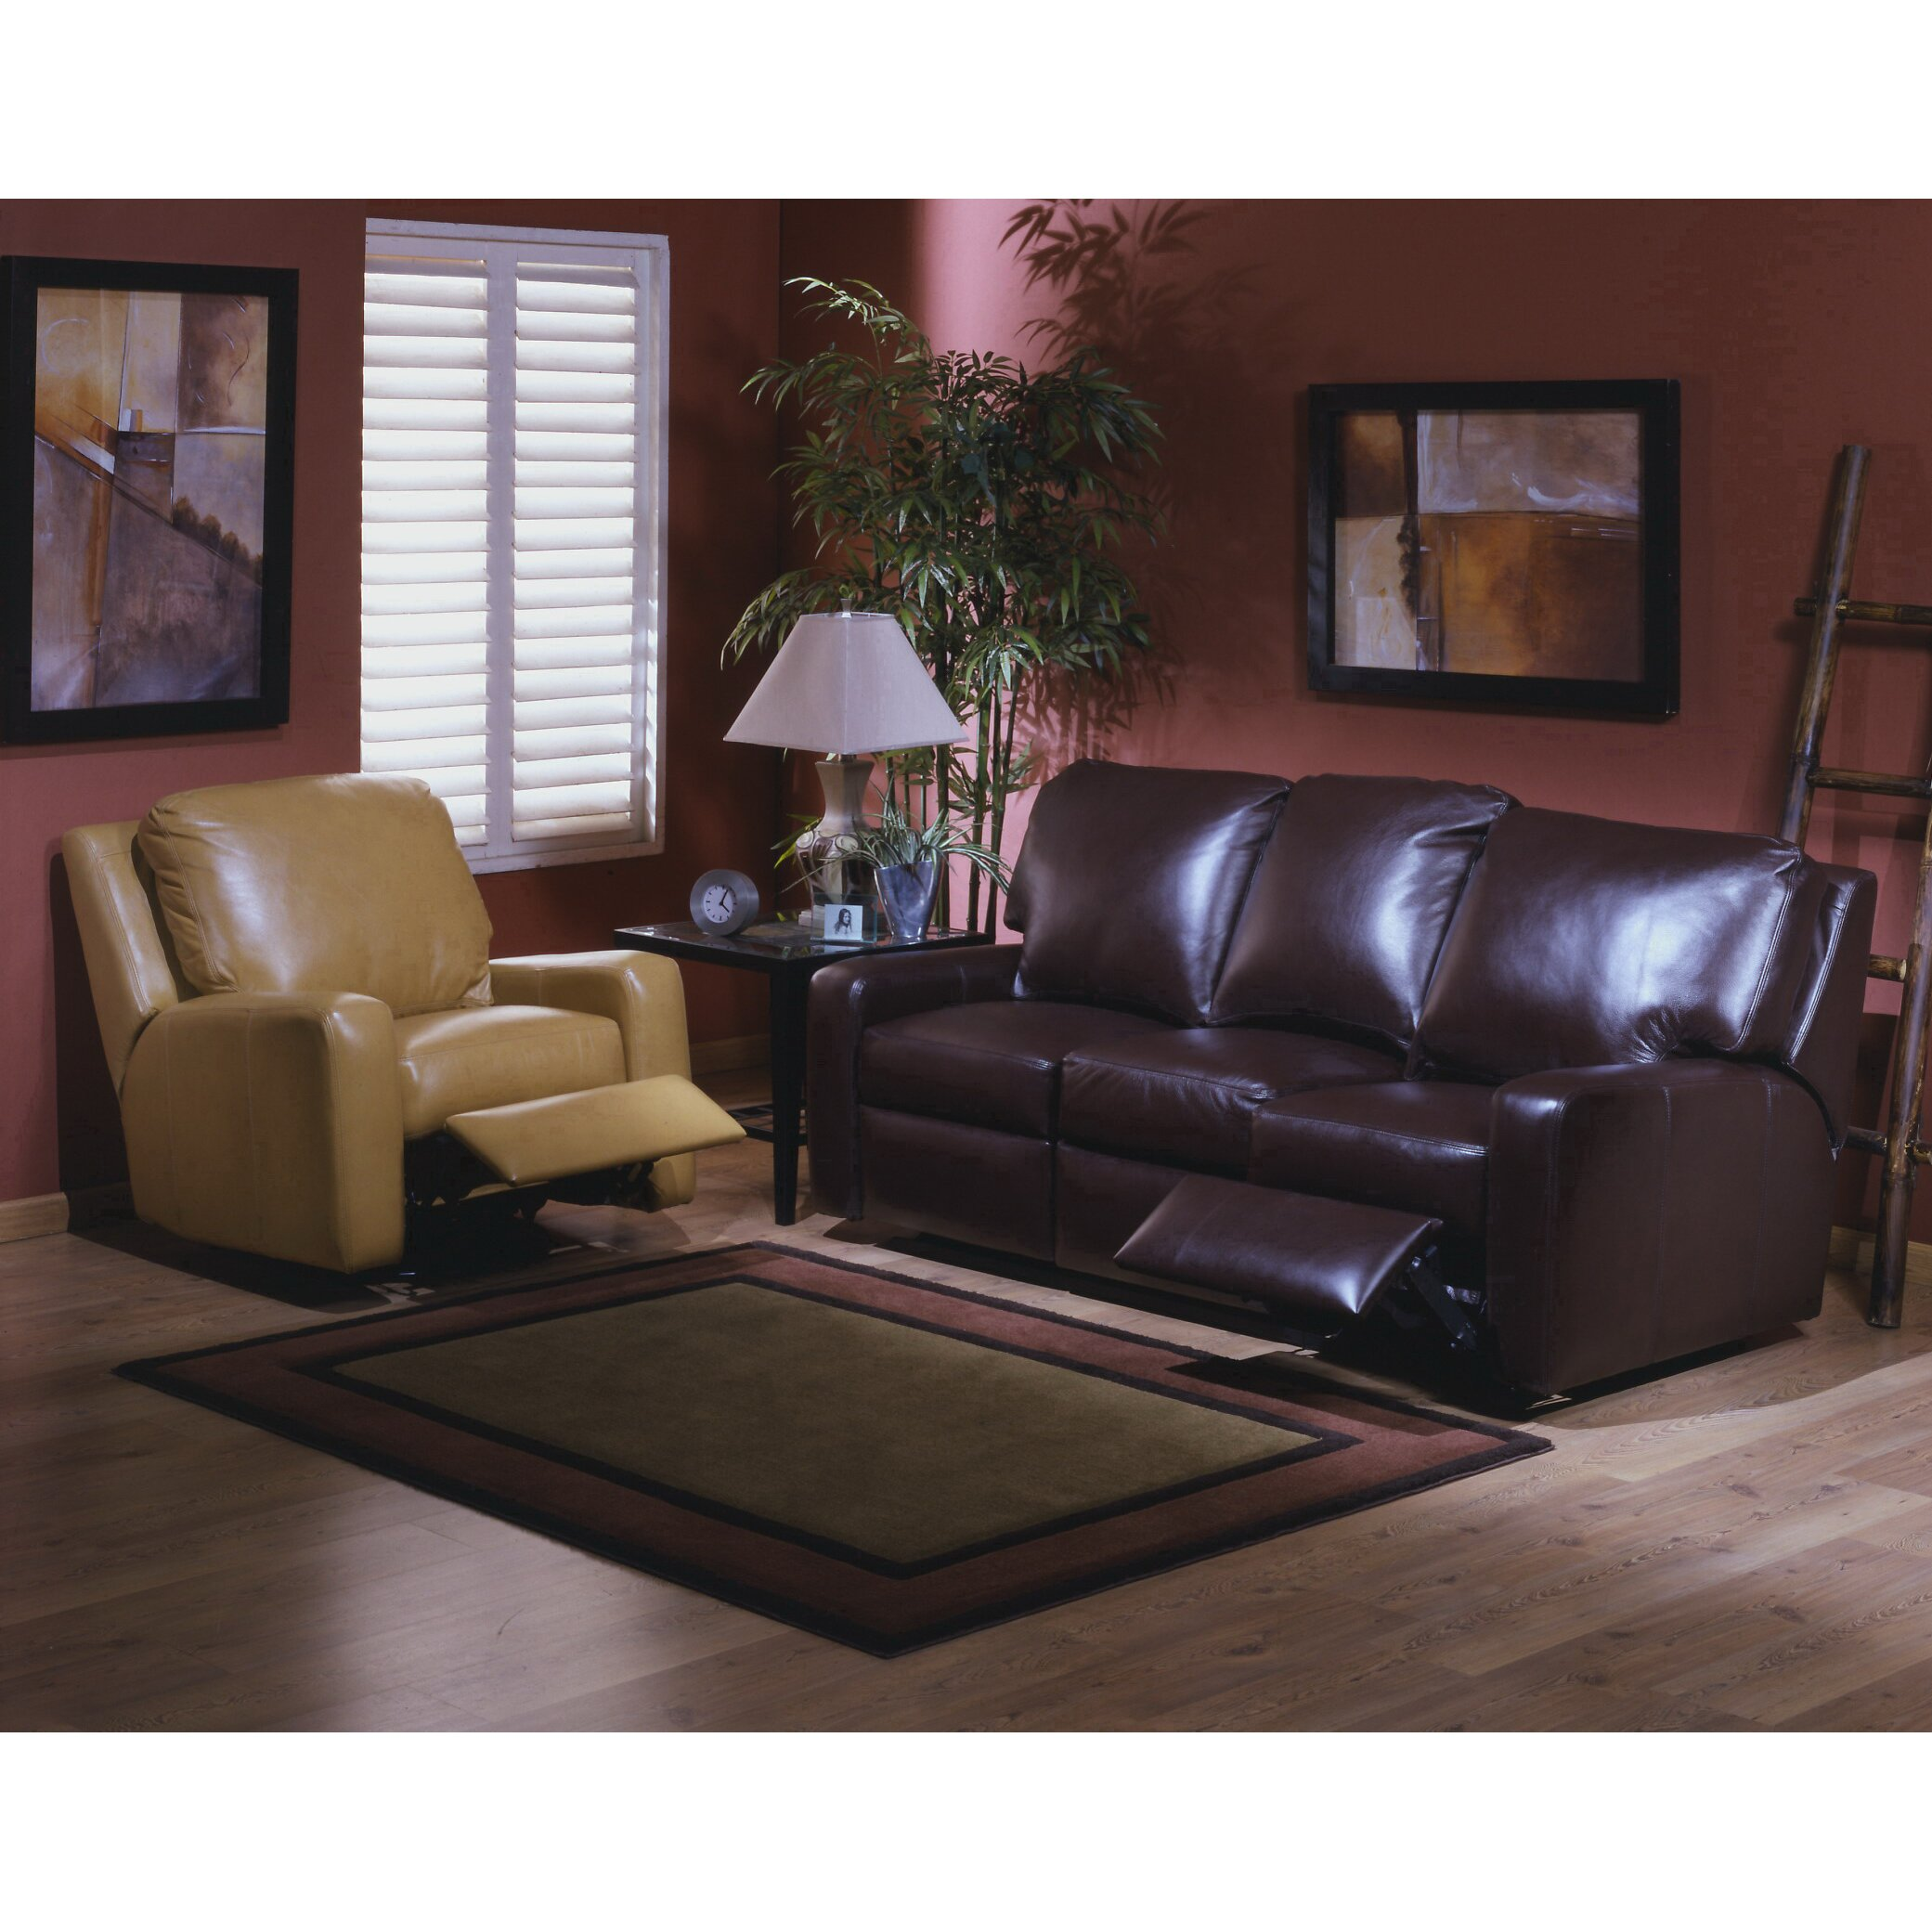 omnia leather mirage reclining leather living room set reviews wayfair. Black Bedroom Furniture Sets. Home Design Ideas